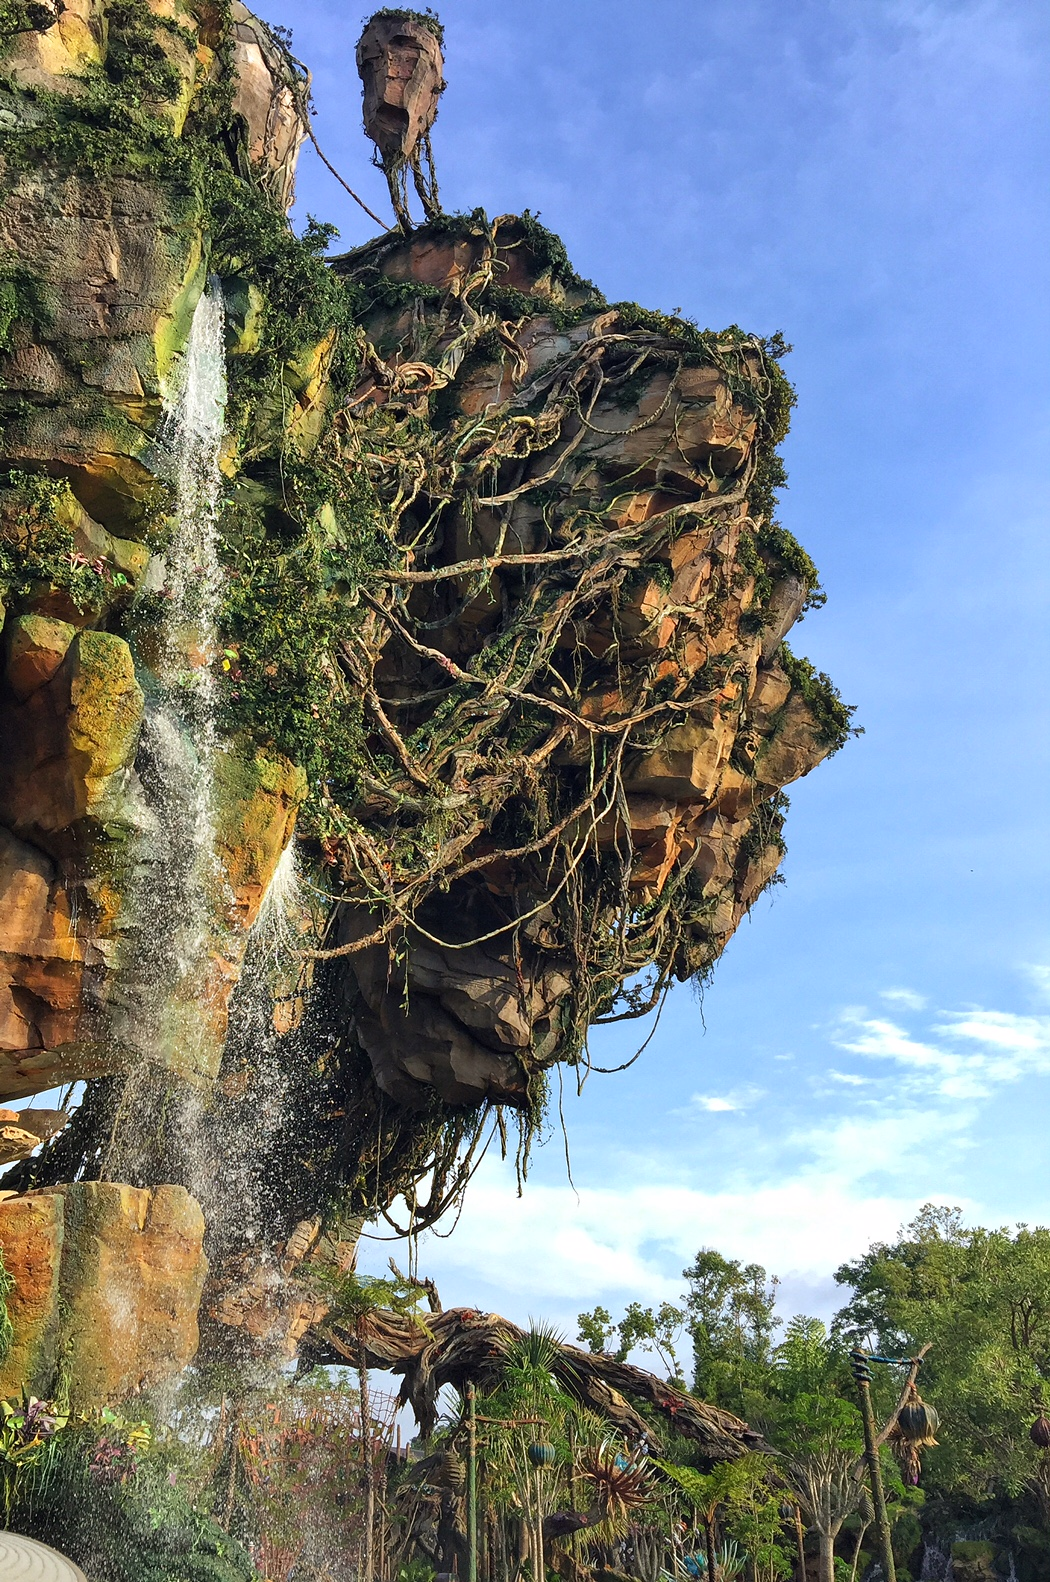 The floating mountain soars over Pandora.